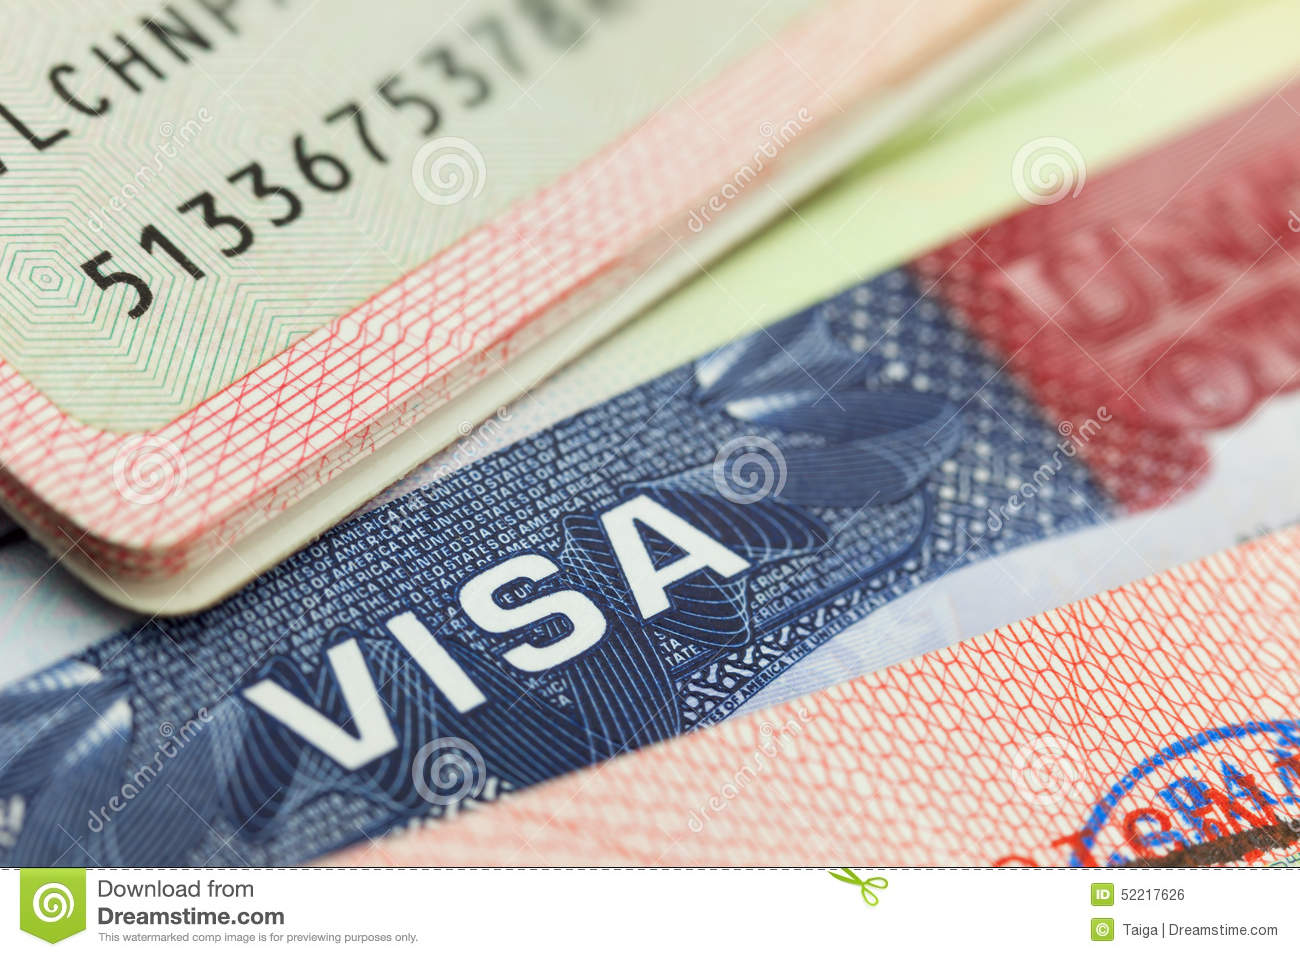 how to get uk visa from usa